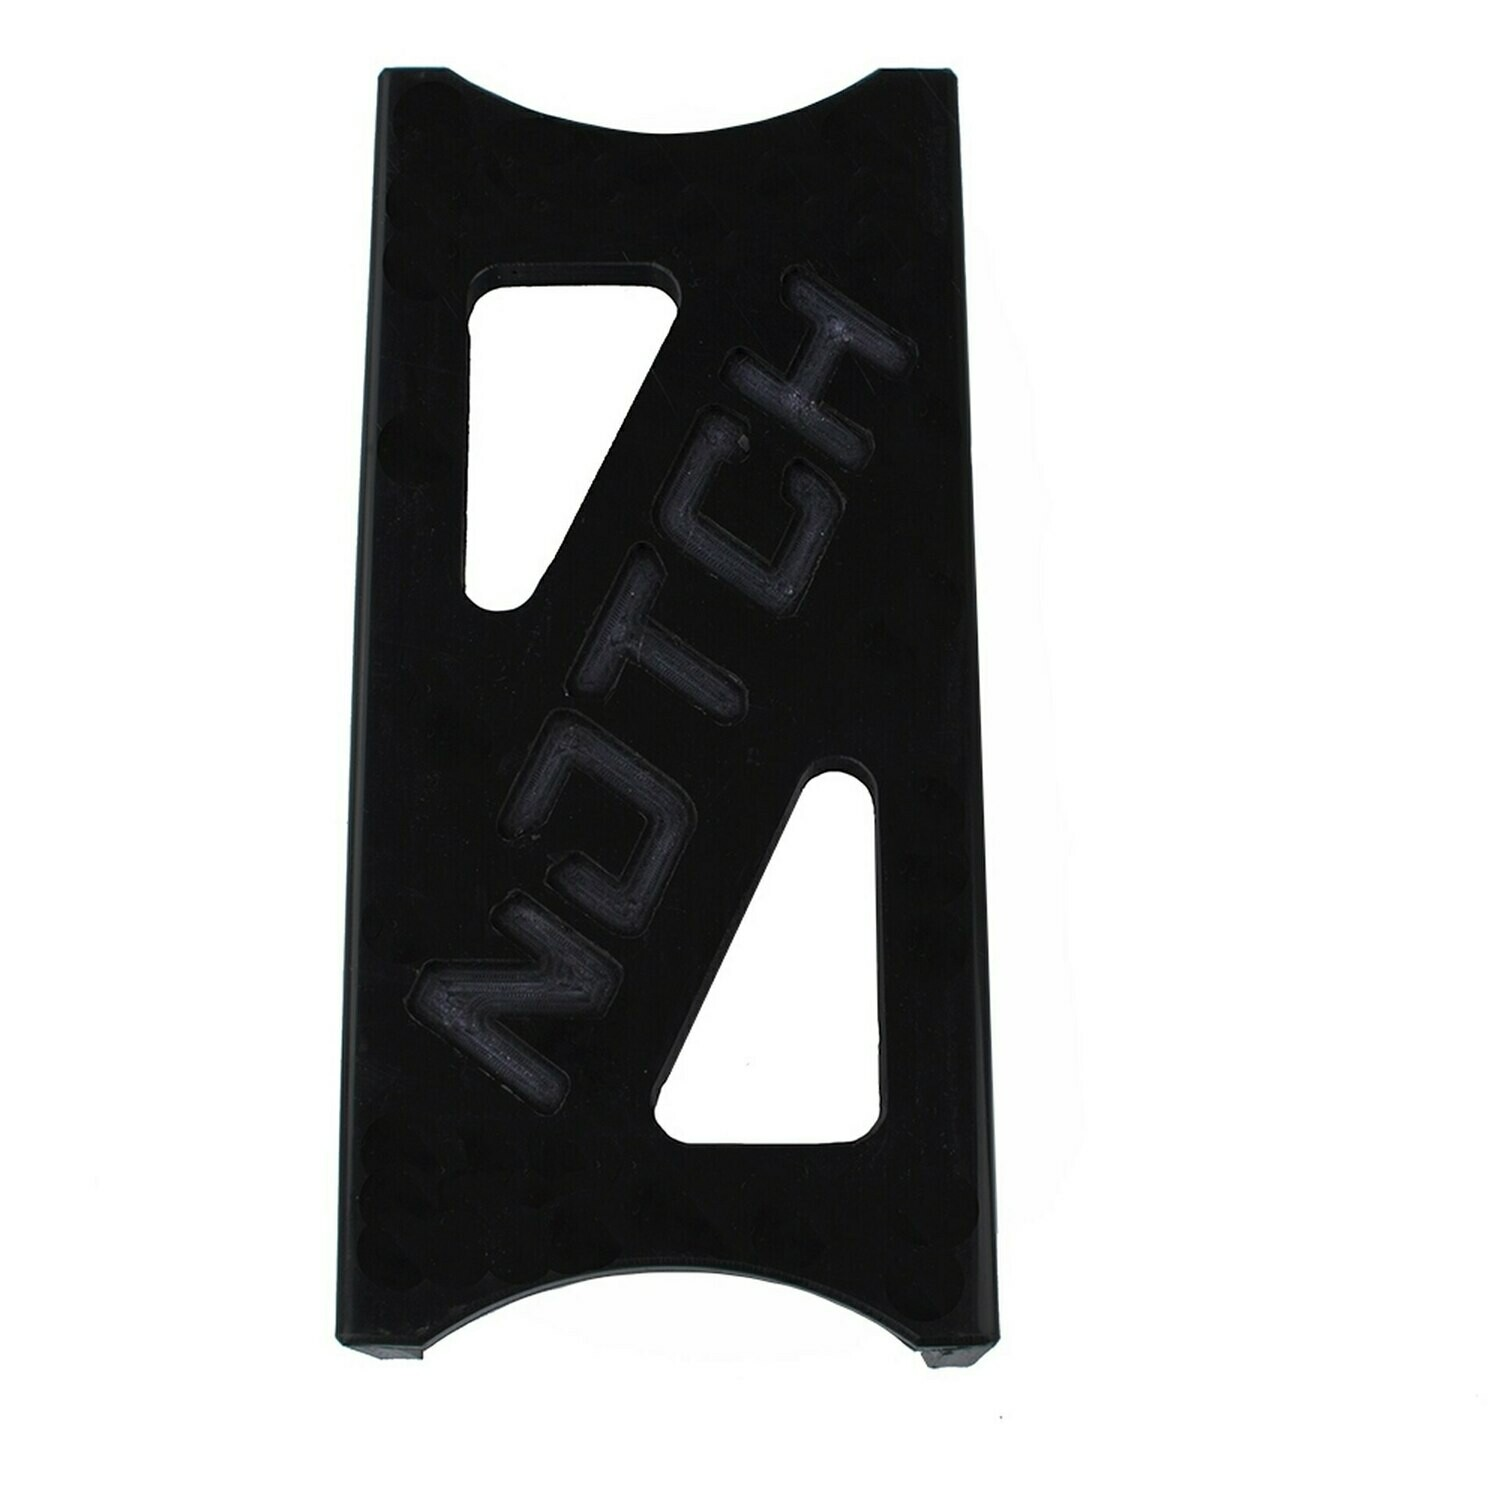 Notch Replaceable Chainsaw Scabbard Pocket